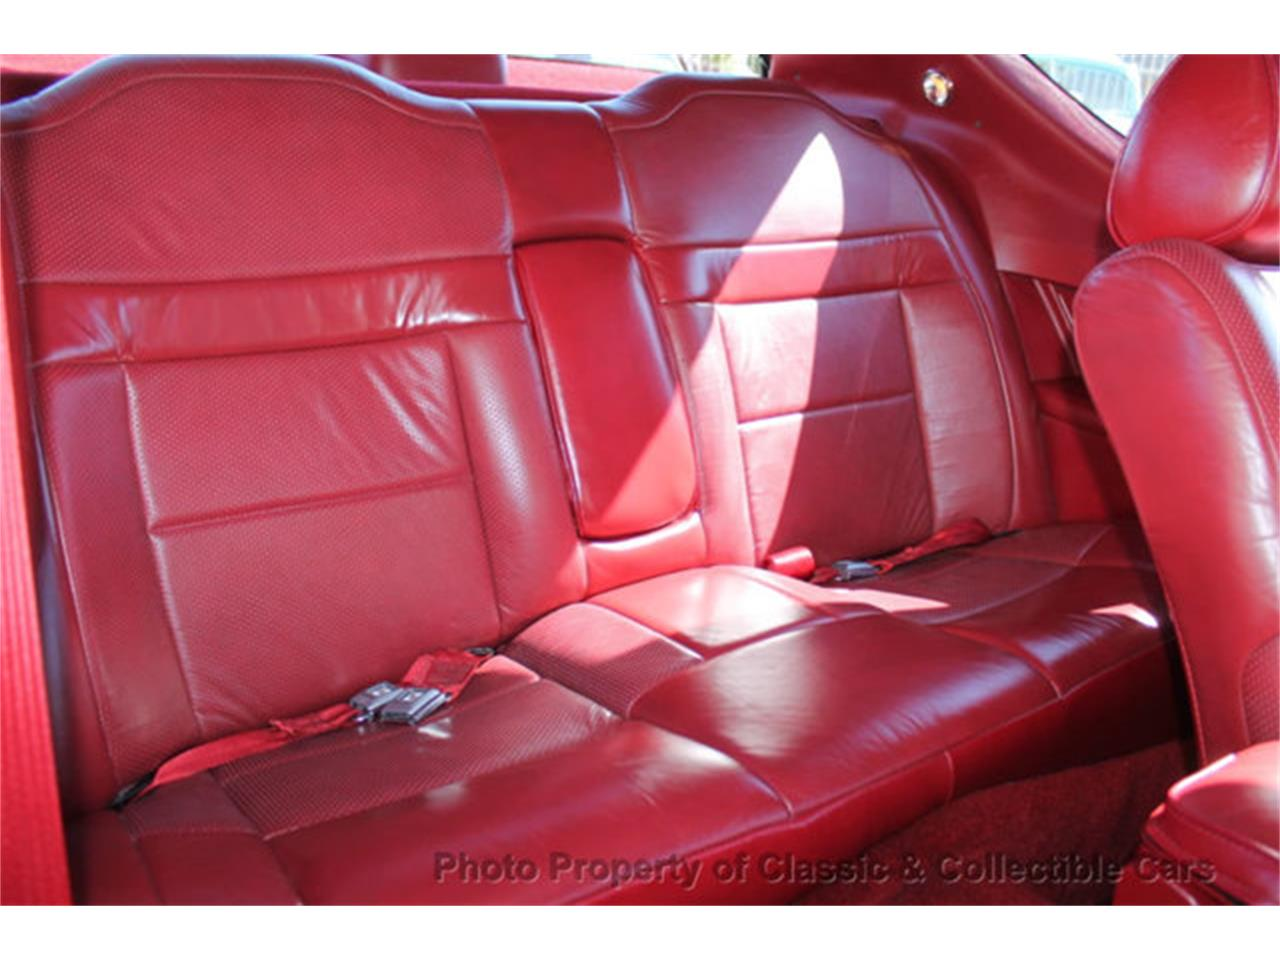 1988 Tiffany Classic for sale in Las Vegas, NV – photo 15